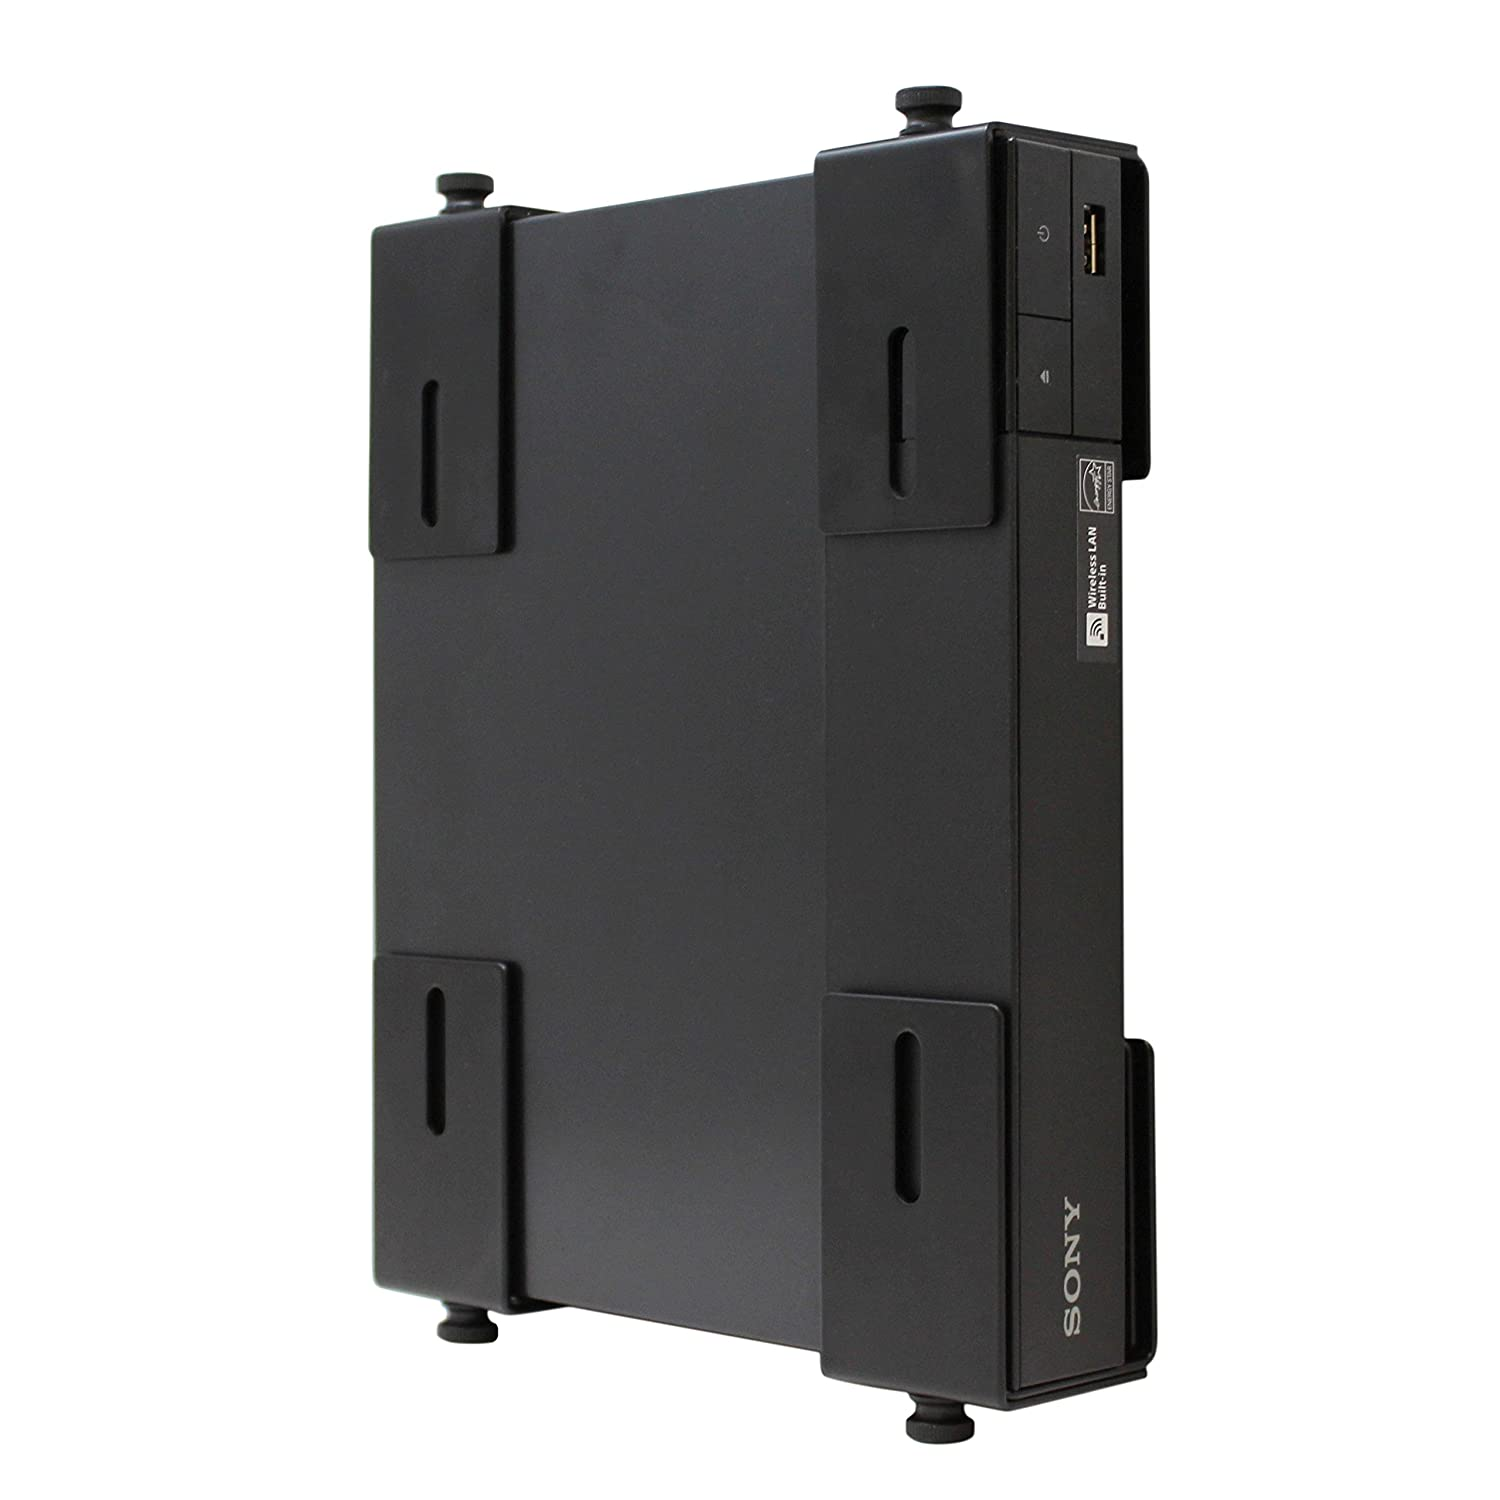 HumanCentric Adjustable Device Wall Mount | DVD Players, Cable Boxes, Receivers, Set Top Box and Other A/V Equipment | Patent Pending